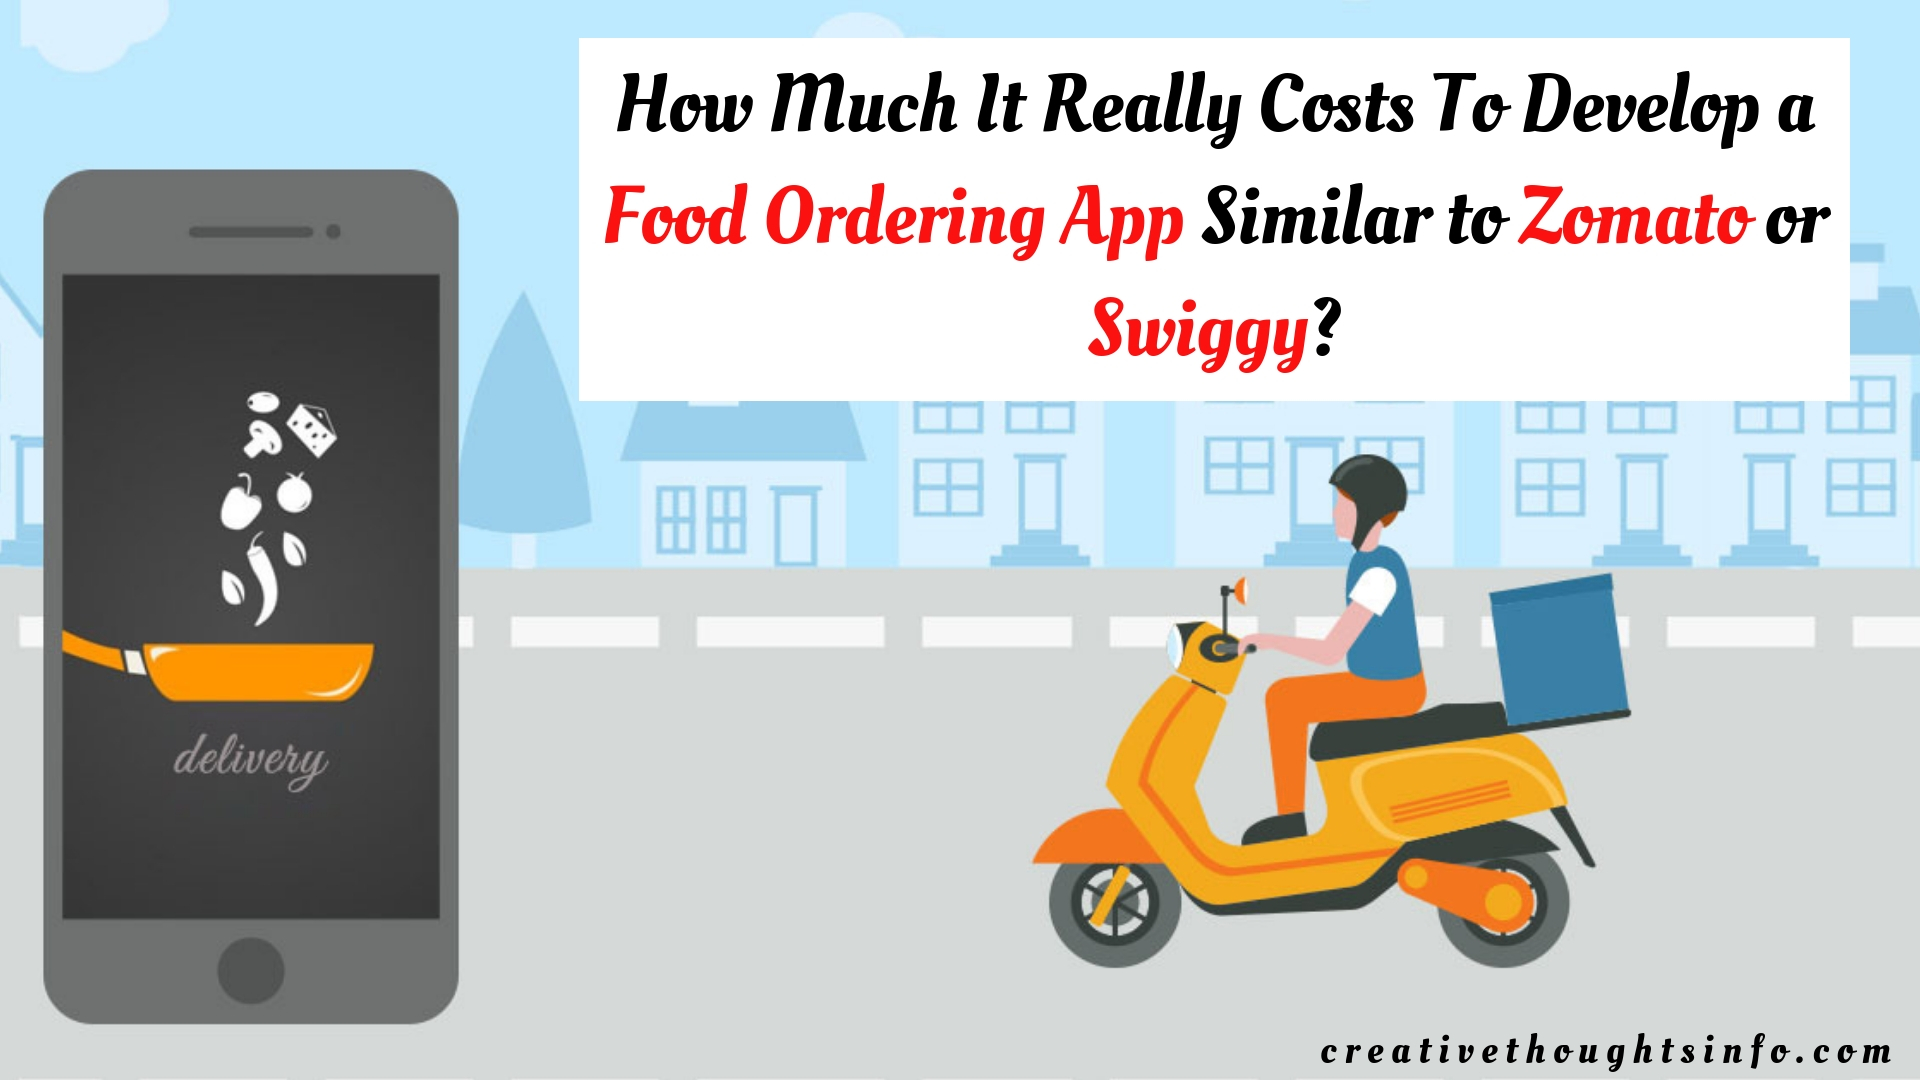 How Much It Really Costs To Develop a Food Ordering App Similar to Zomato or Swiggy? - Image 1